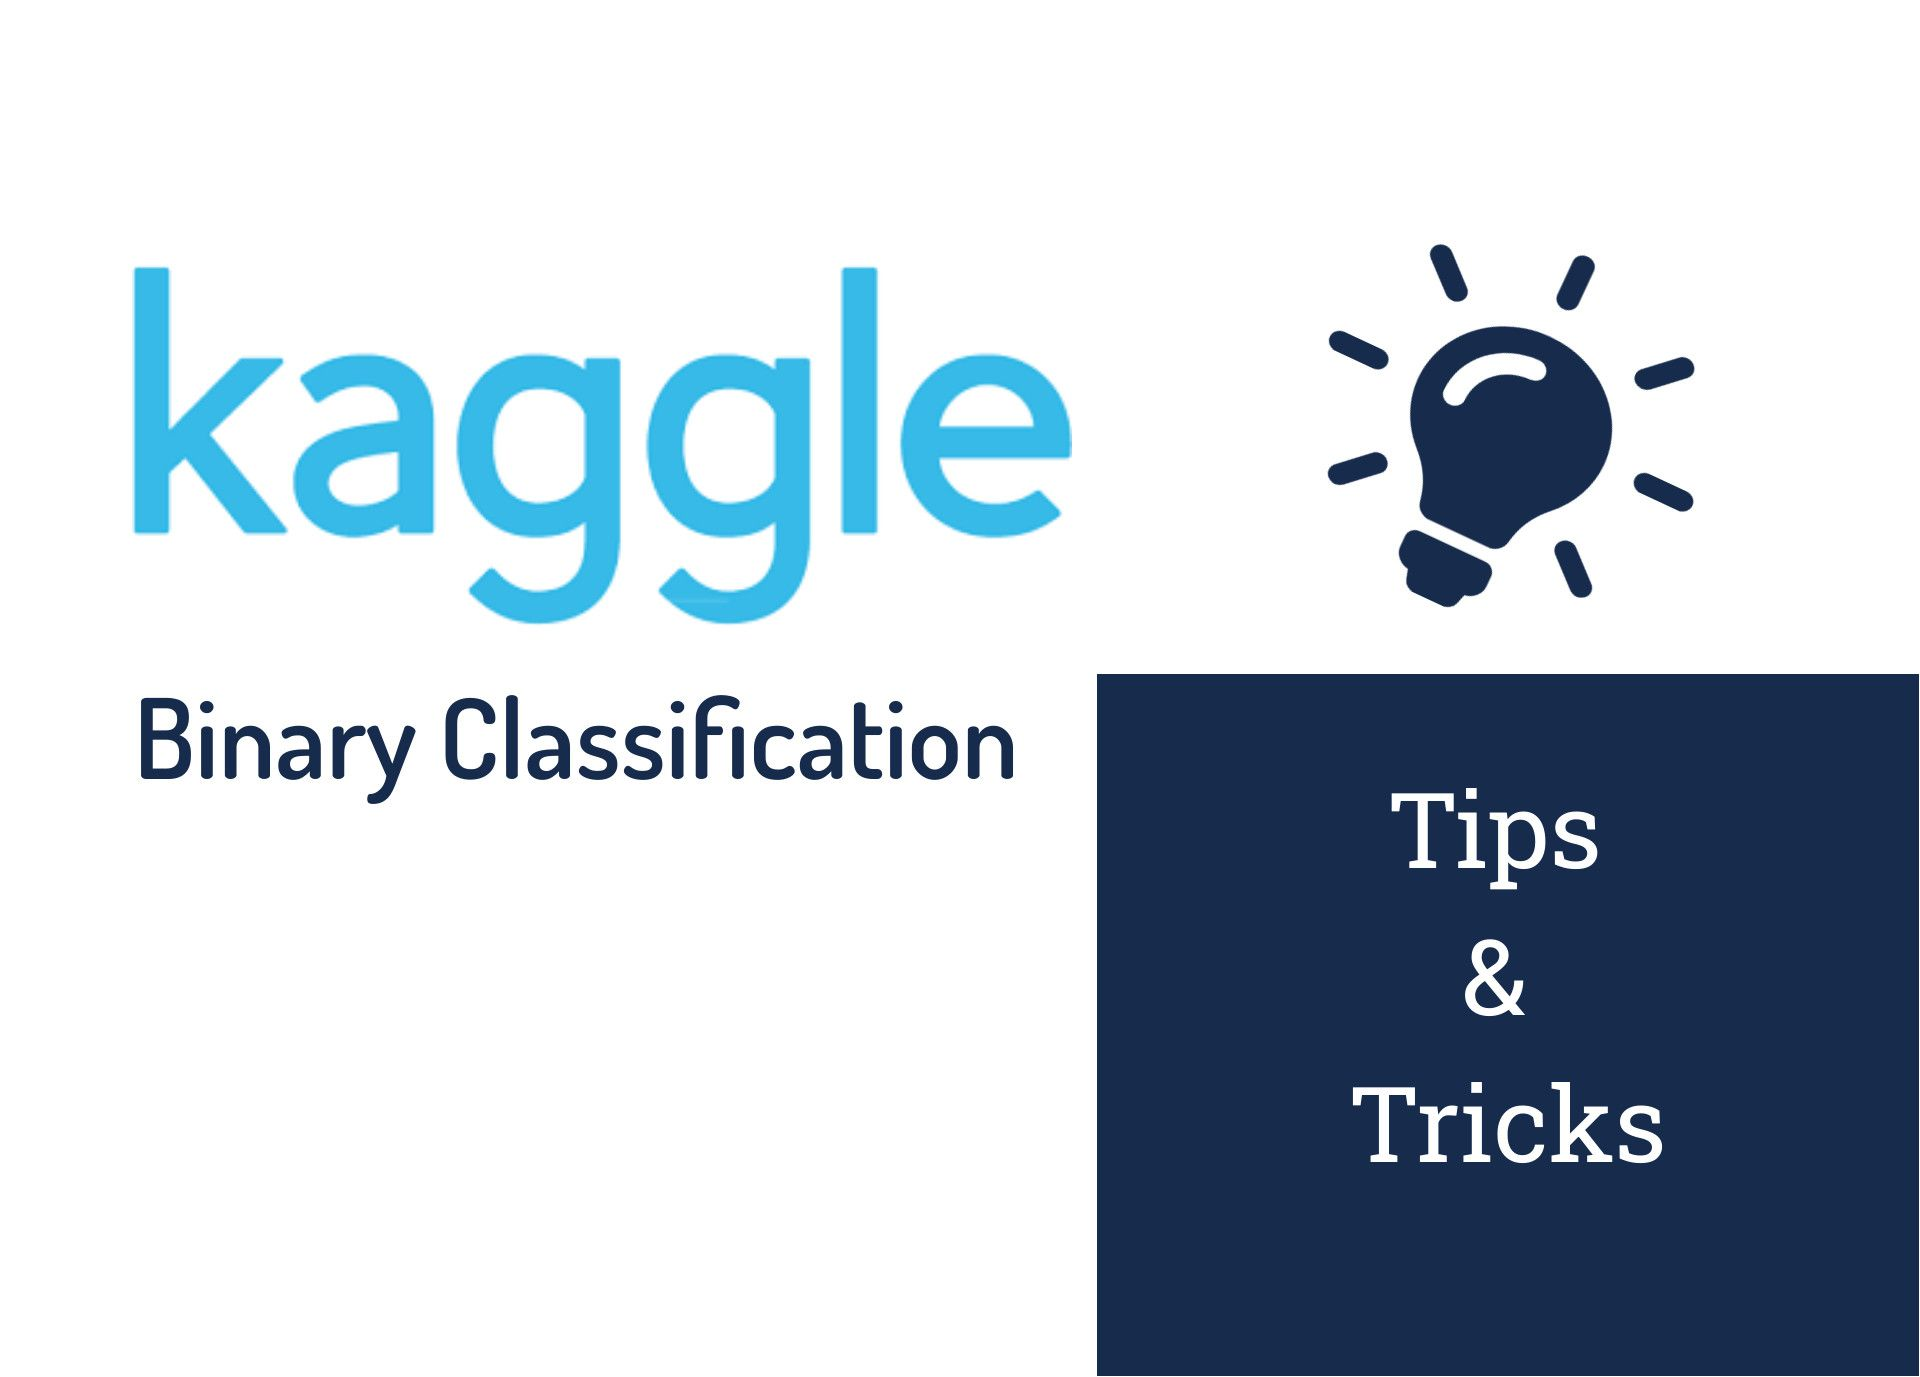 /practical-tips-for-binary-classification-excellence-ape3w02 feature image